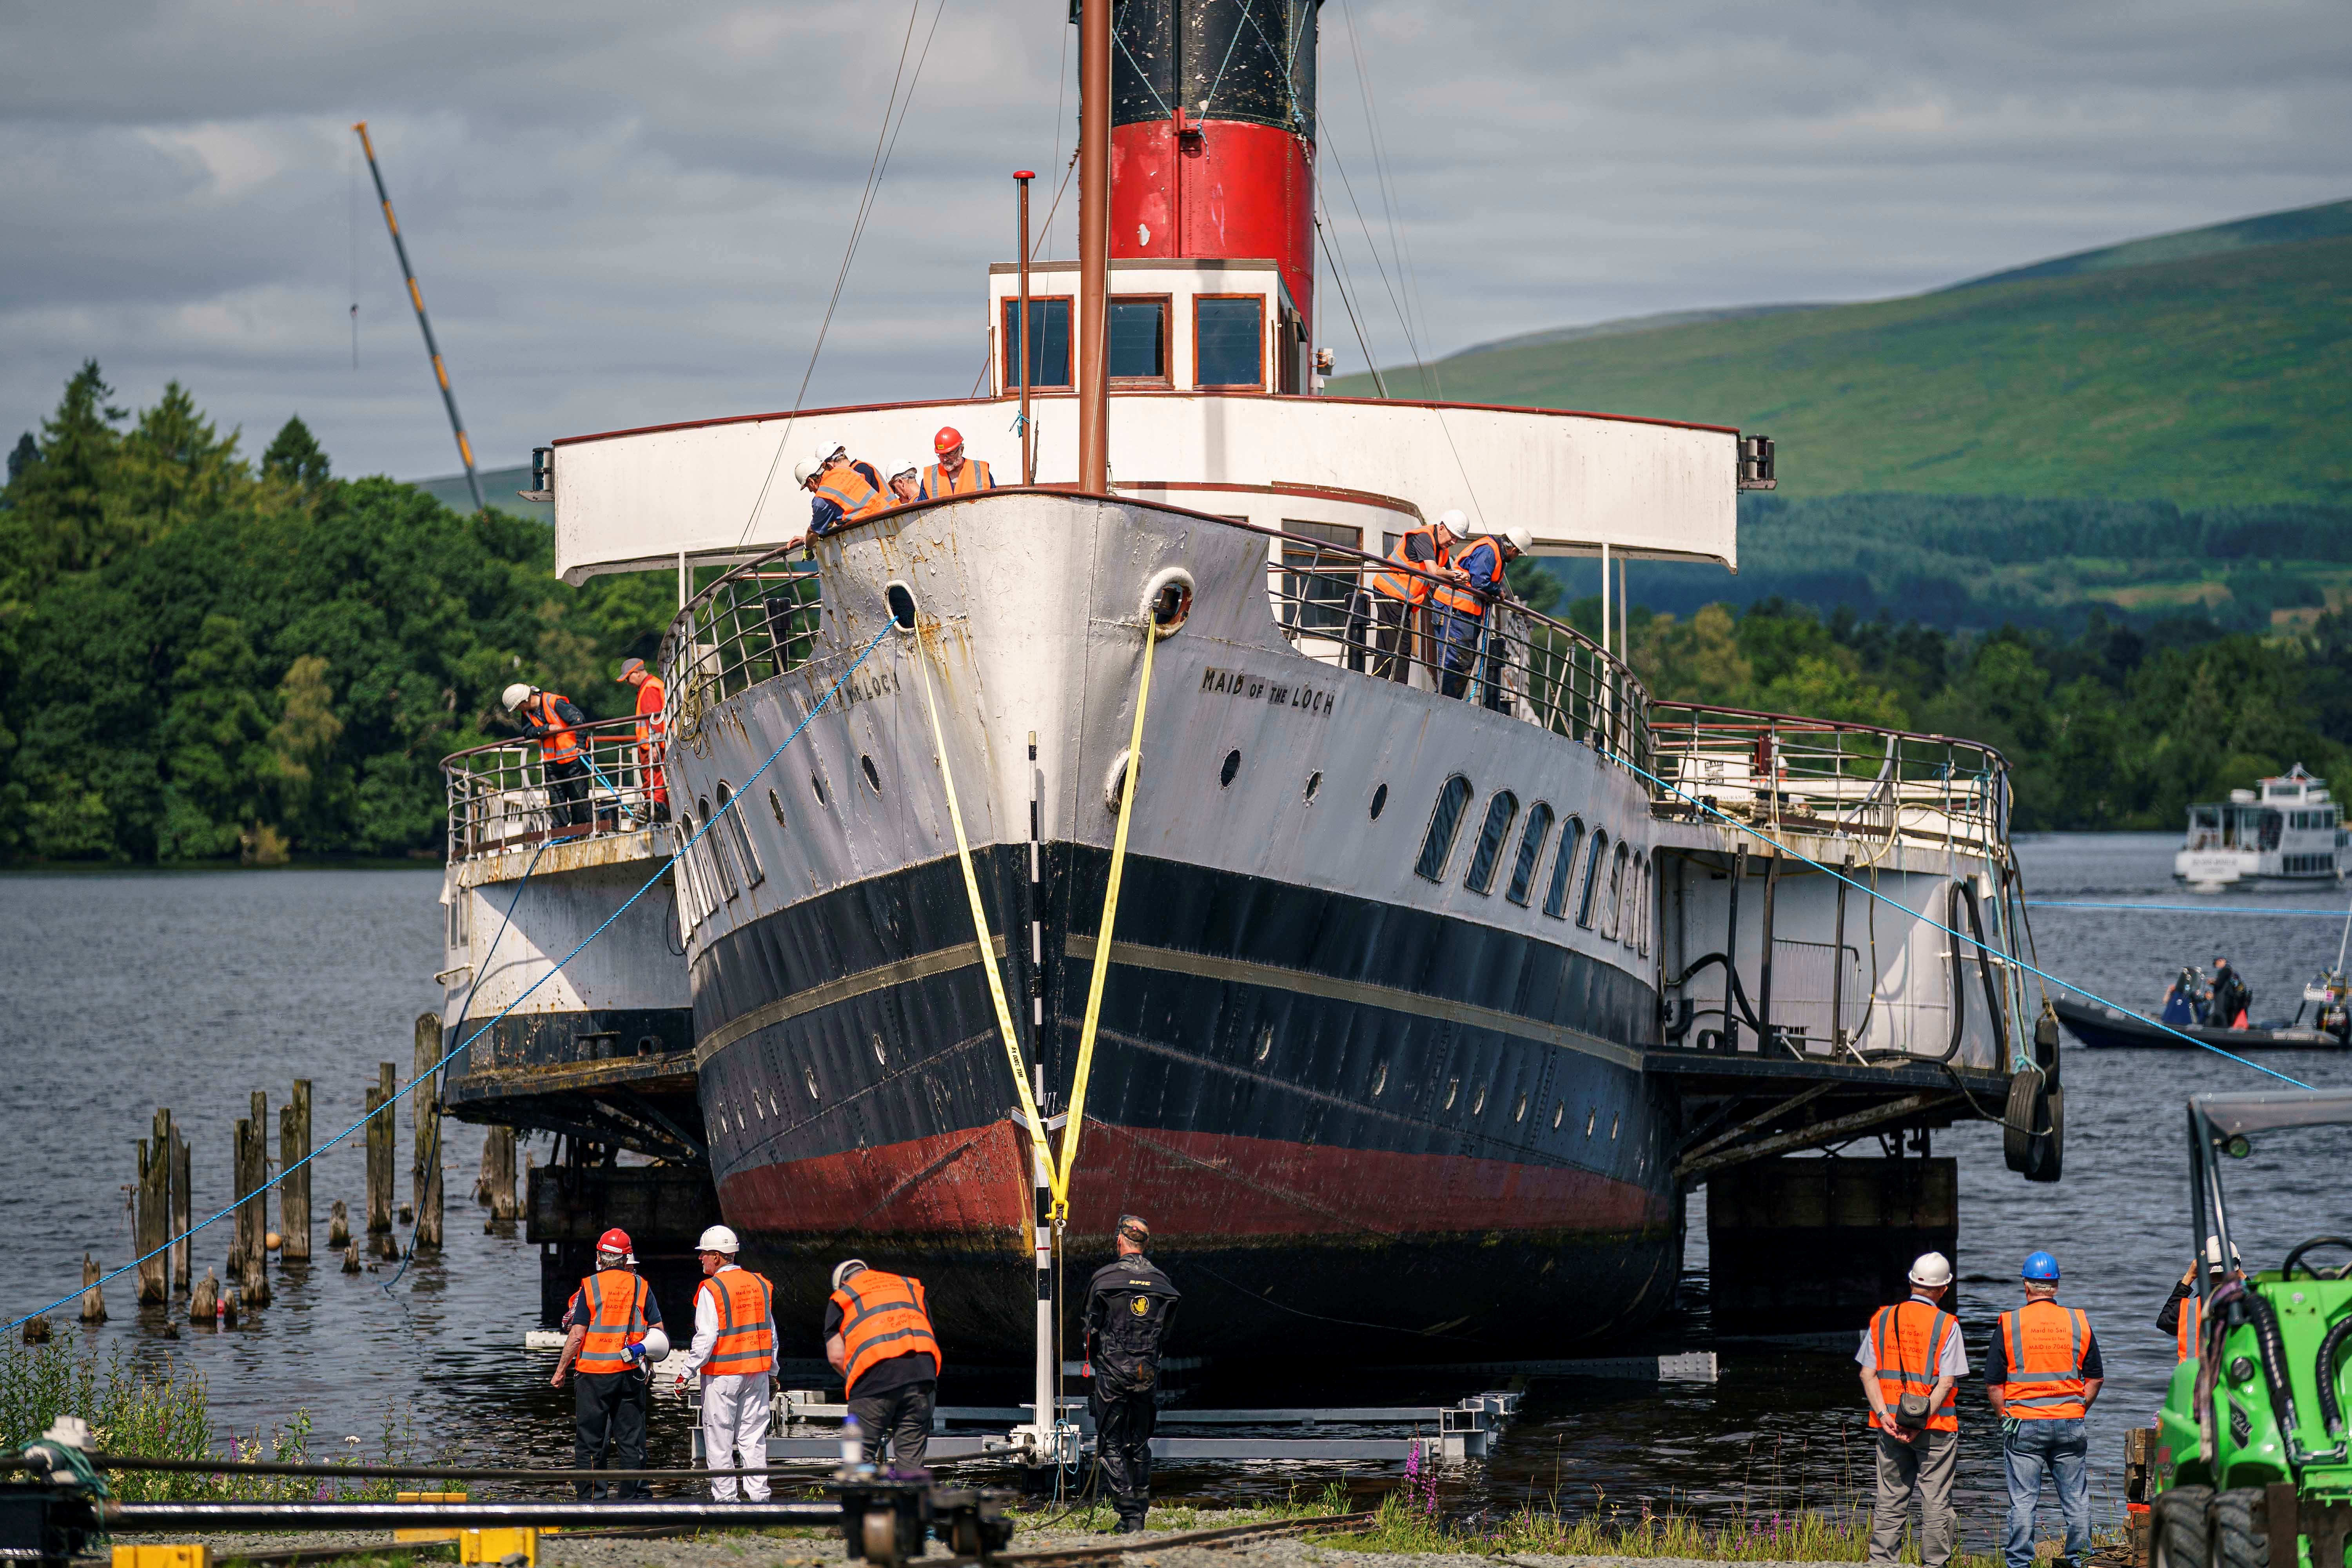 <p>Handout photo of Loch Lomond paddle steamer Maid of the Loch brought onto land for restoration in Balloch. The 430-tonne ship, launched in 1953, has been hauled out of the water for the second time in 40 years for restoration works in a operation which took more than two years to plan. Picture date: Wednesday July 14, 2021.</p>